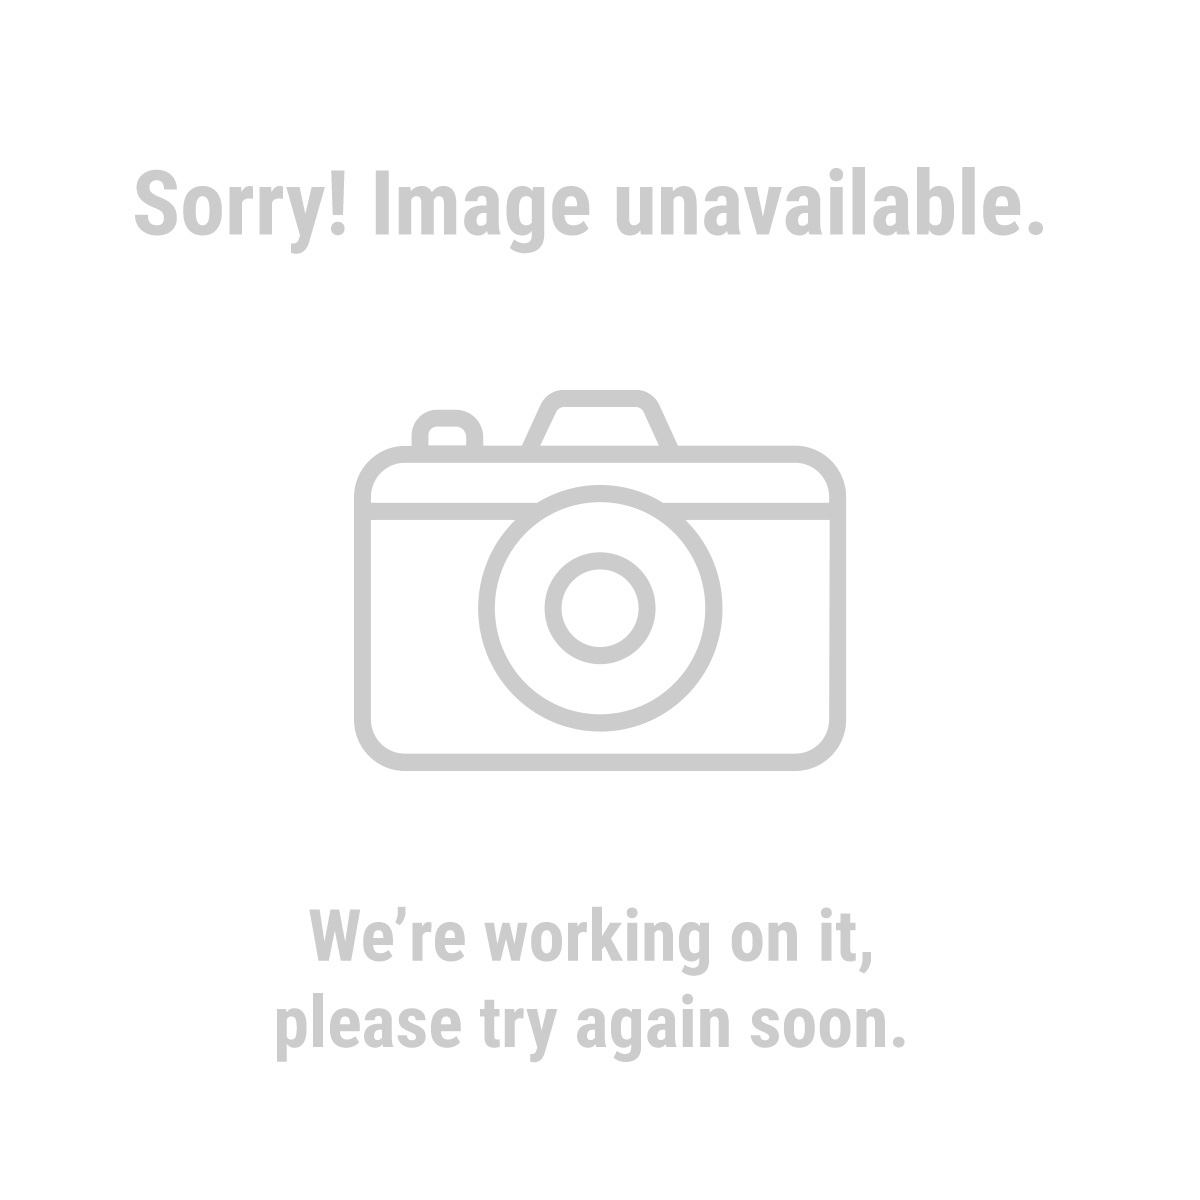 Pittsburgh Professional 67986 3 Piece Universal Impact Joint Set